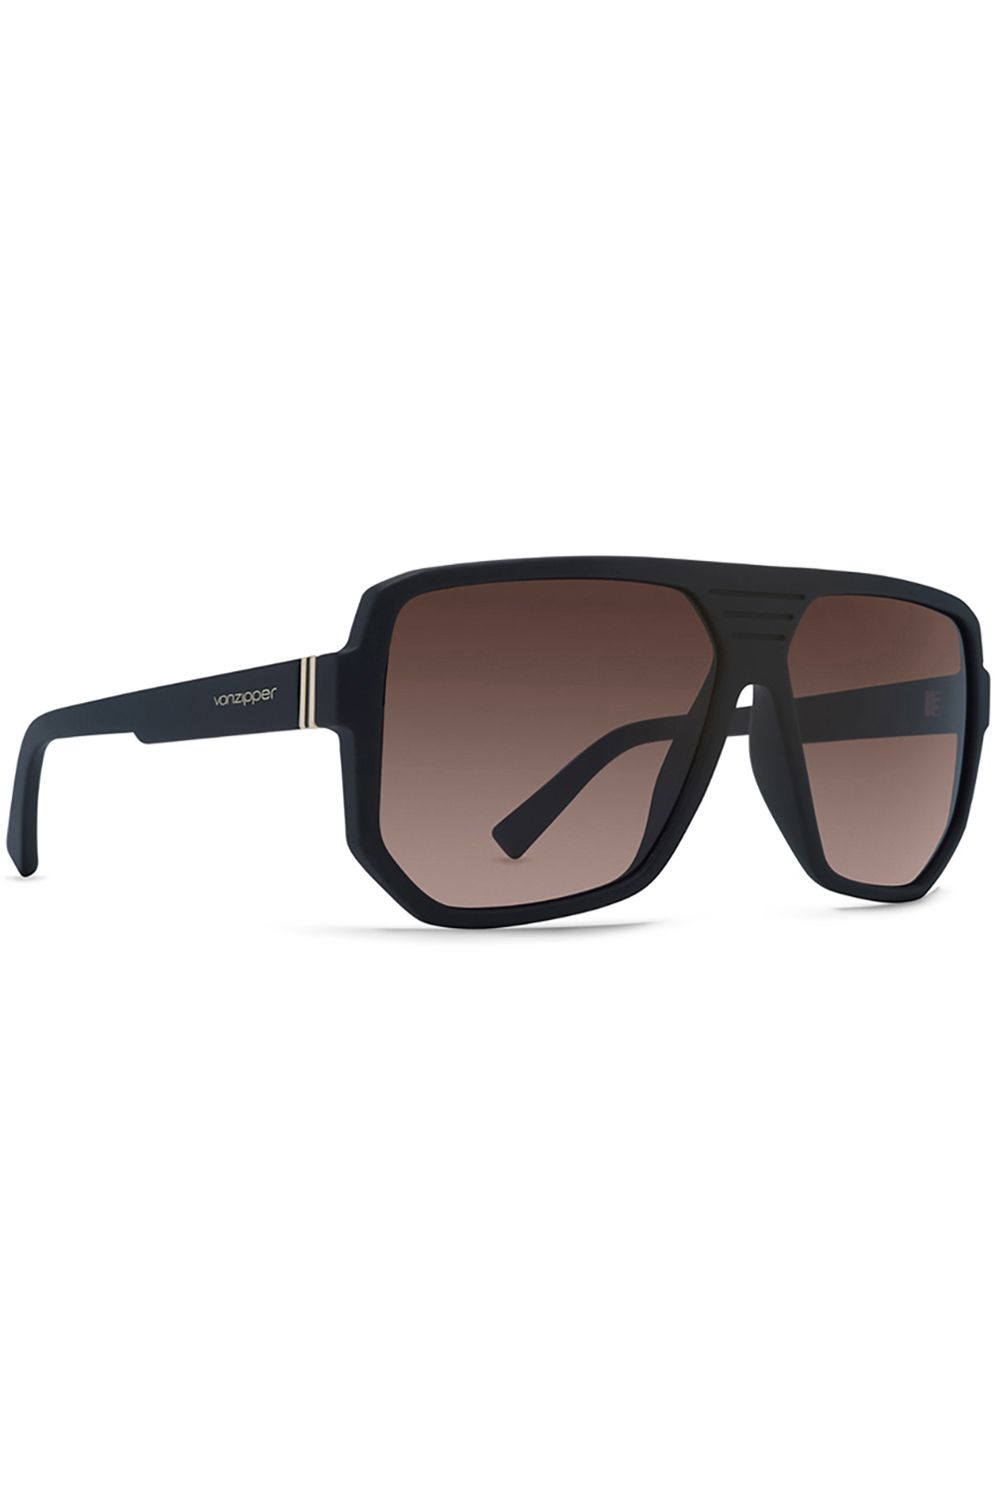 Oculos VonZipper ROLLER Black Satin / Bronze Gradient